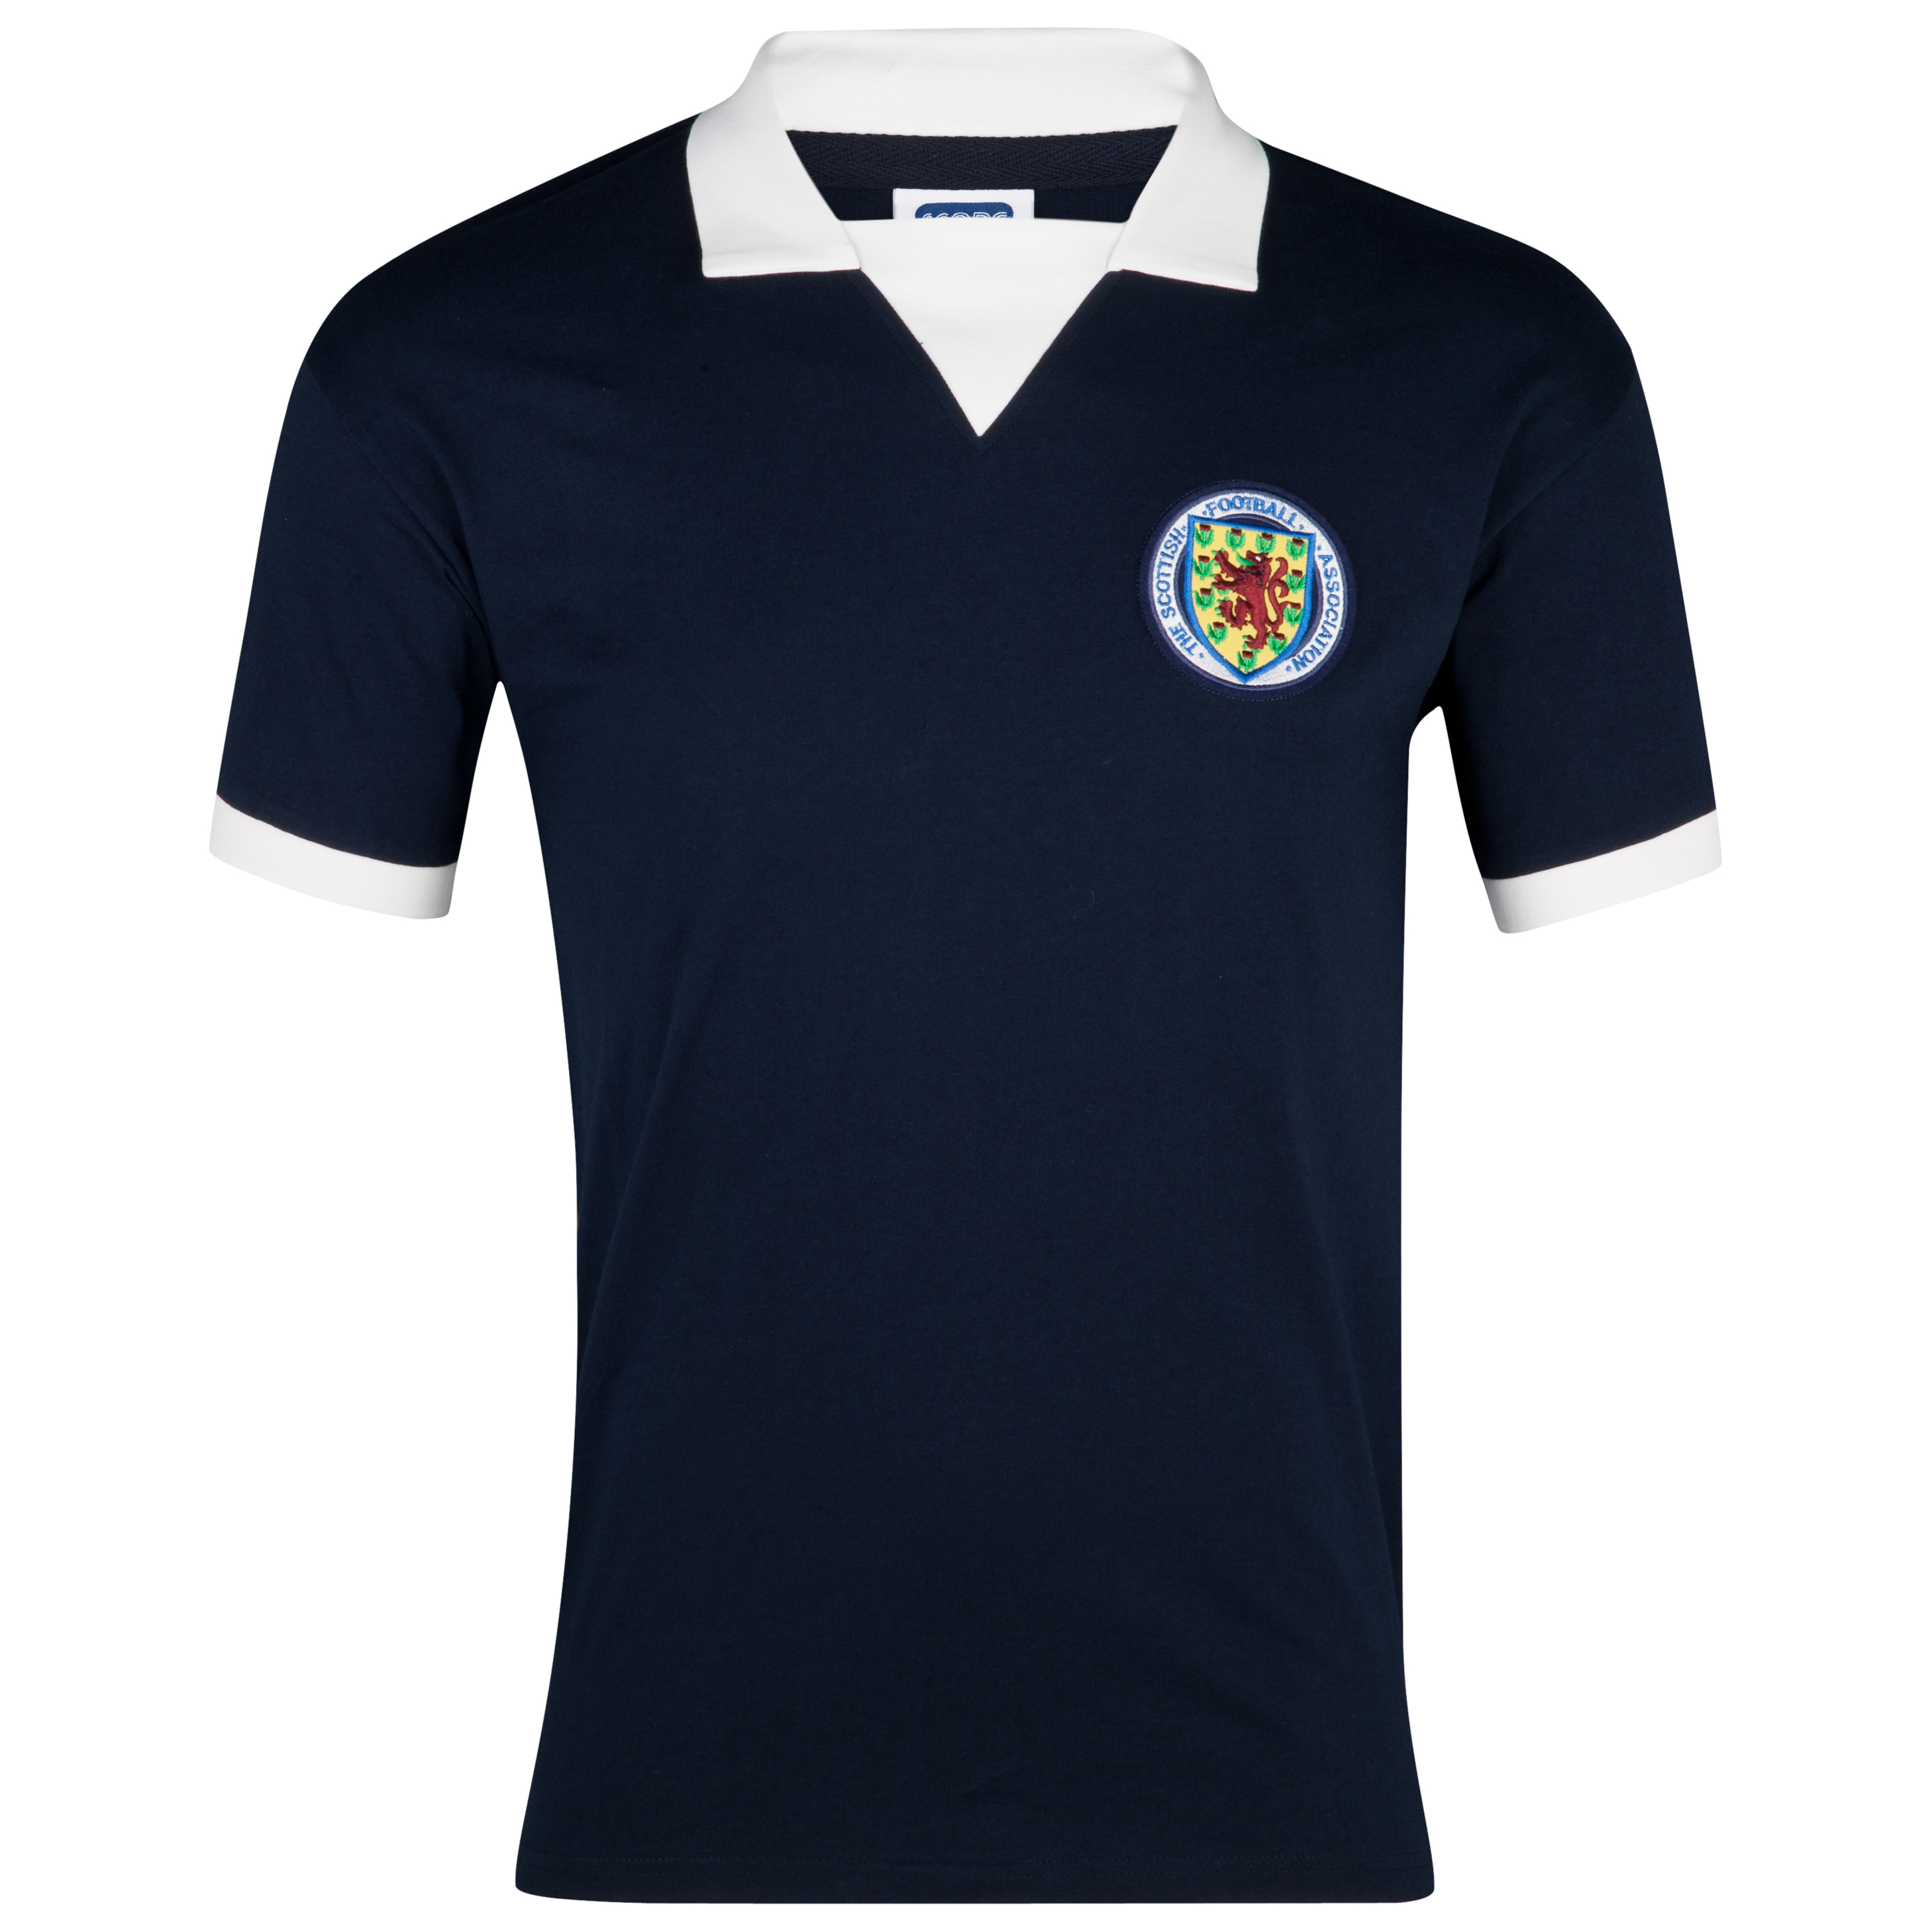 Scotland 1974 Shirt